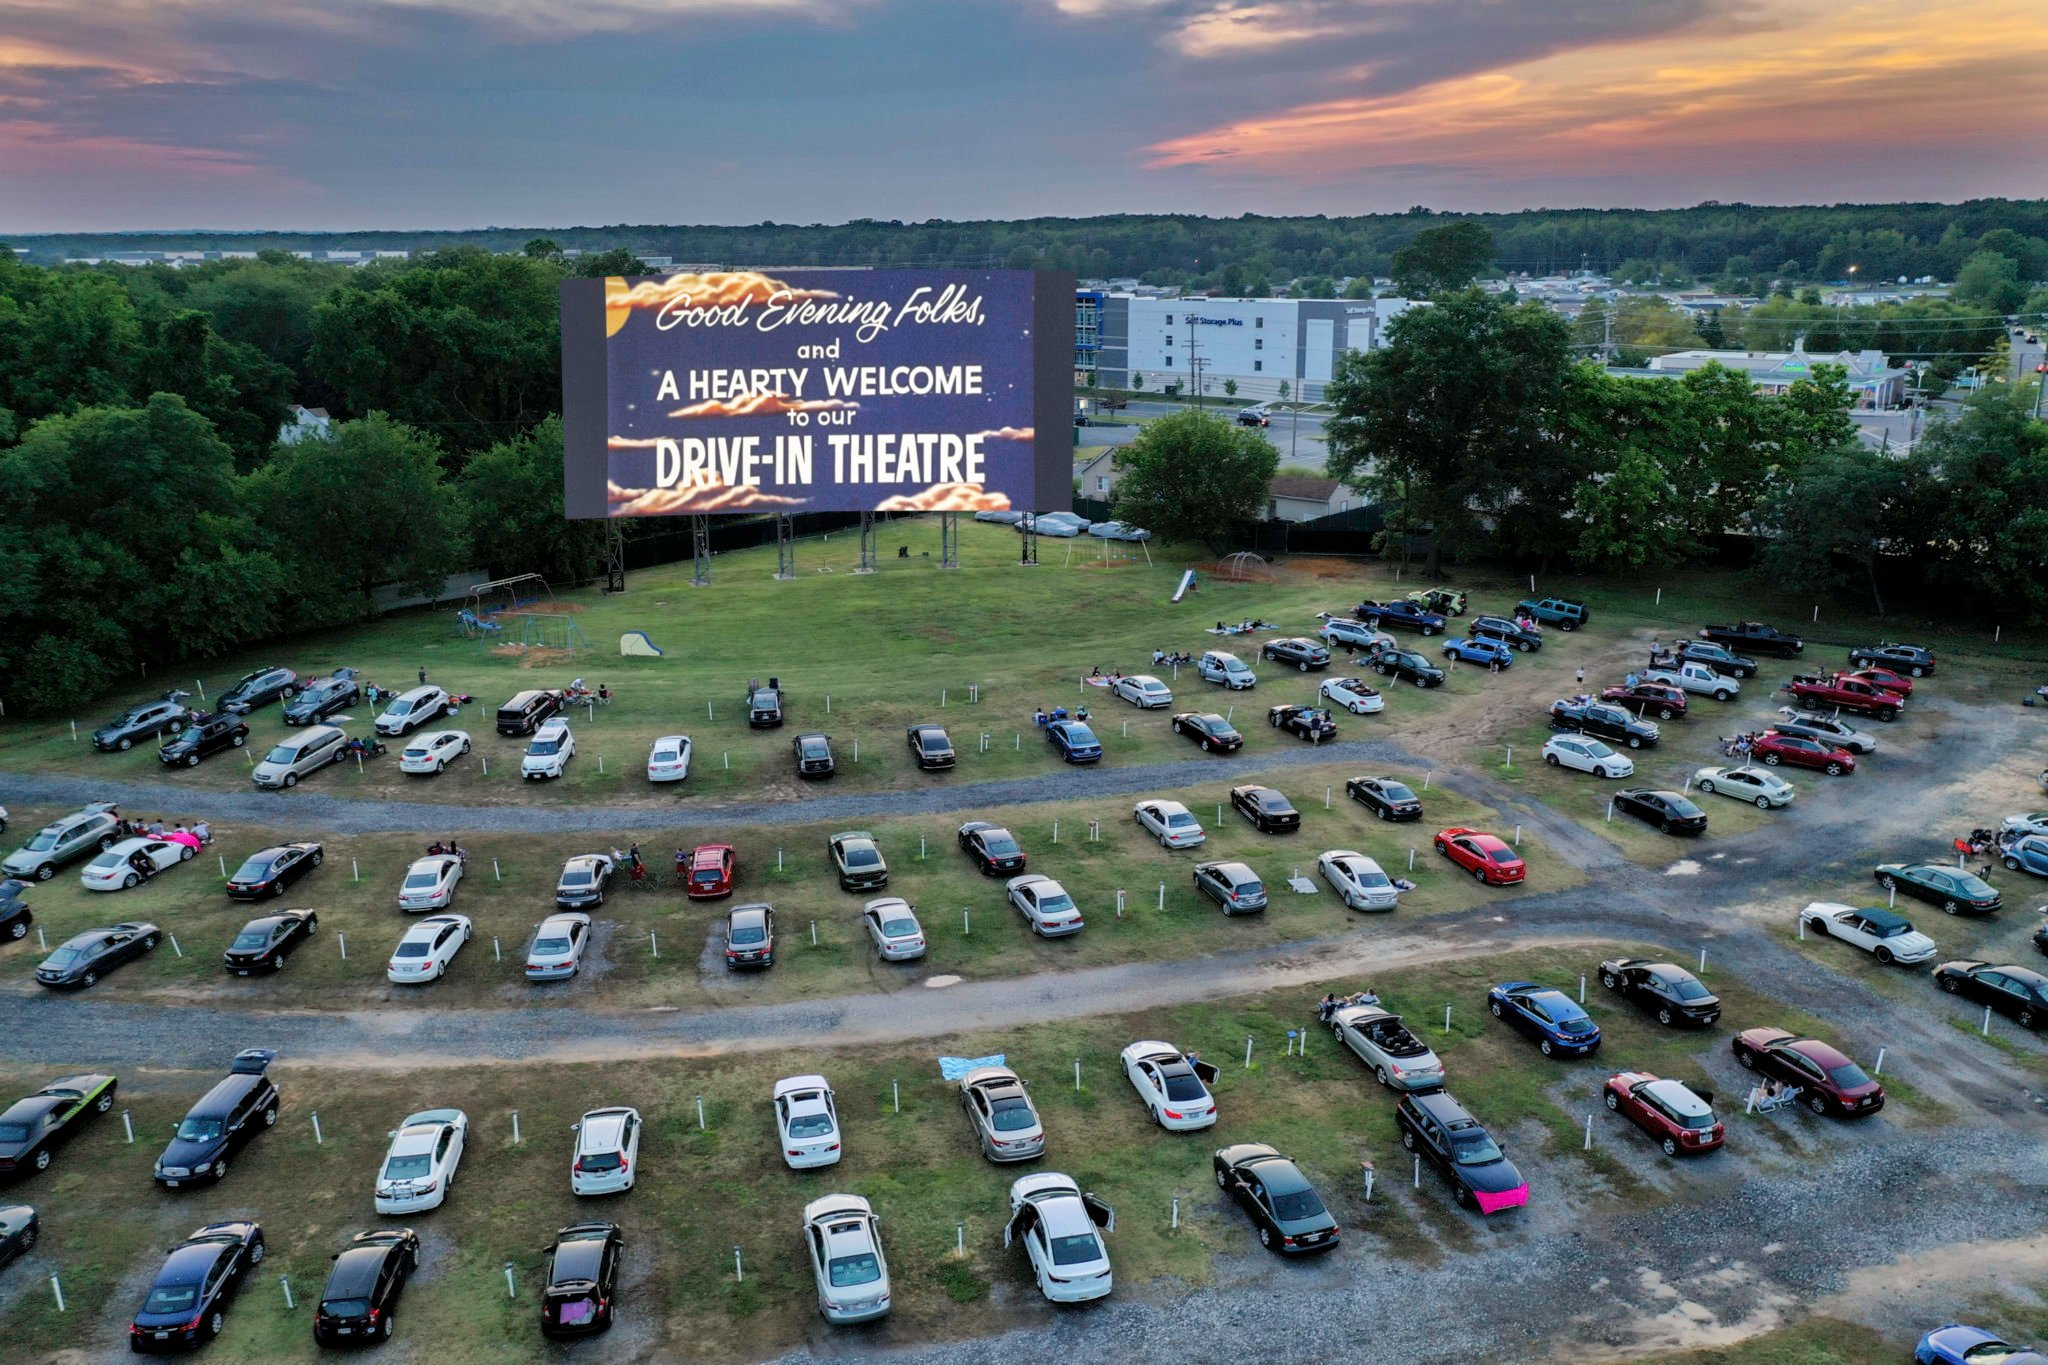 Check Out These Cool Aerial Drone Photos of a Drive-In Movie Theater